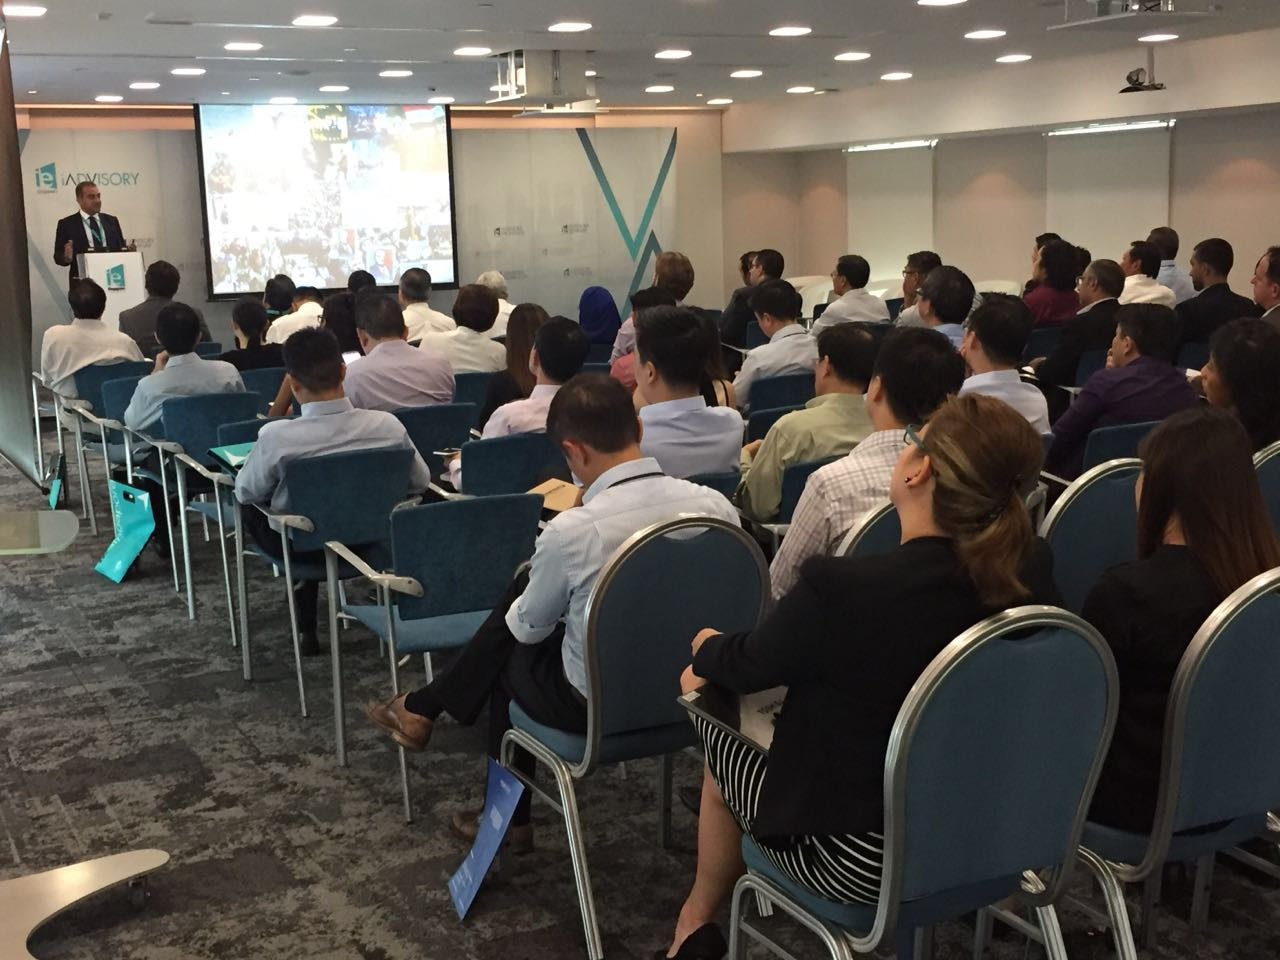 N Gage Consulting CEO seminar talk organized by IE Singapore